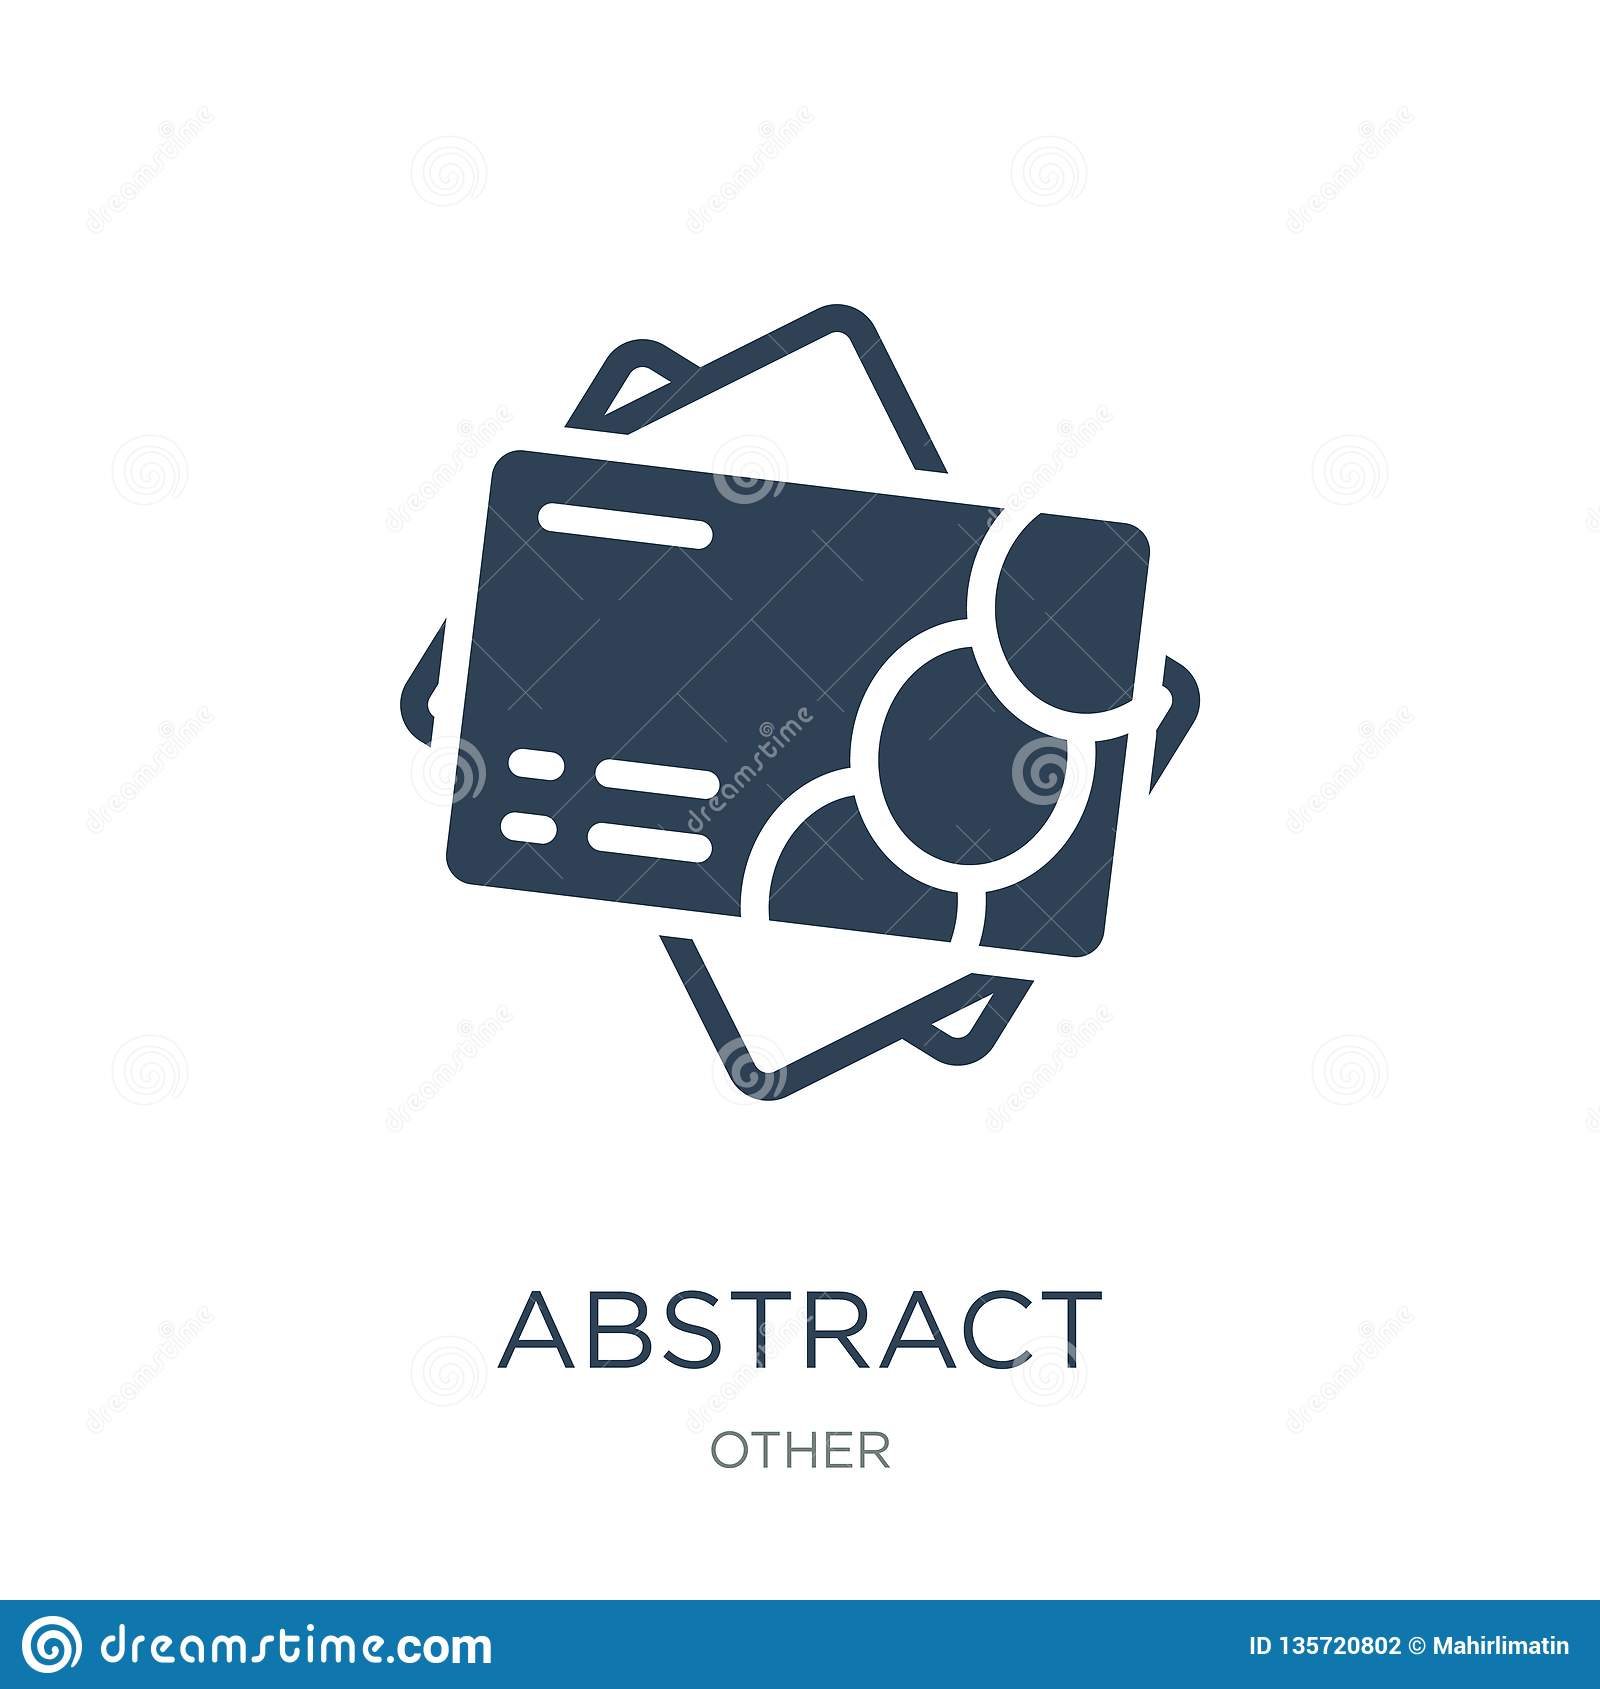 abstract business card icon in trendy design style. abstract business card icon isolated on white background. abstract business